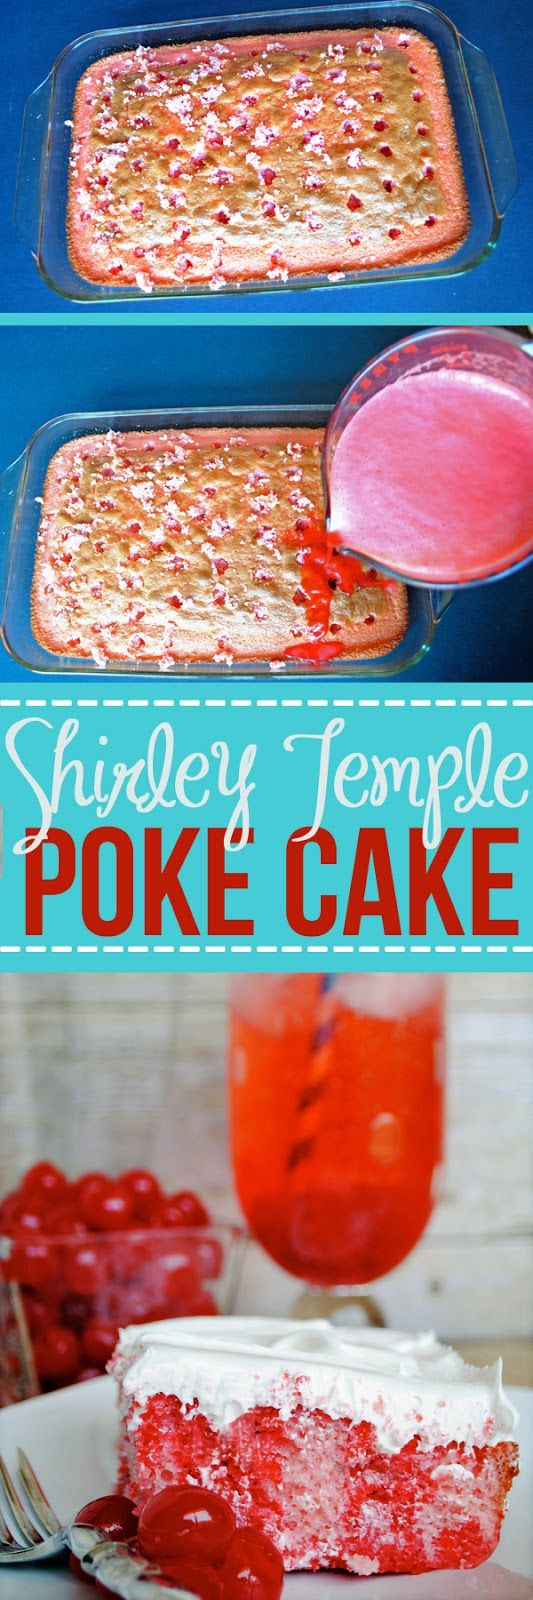 Shirley Temple Poke Cake | All of the flavors of the classic kids' drink baked into a delicious poke cake.